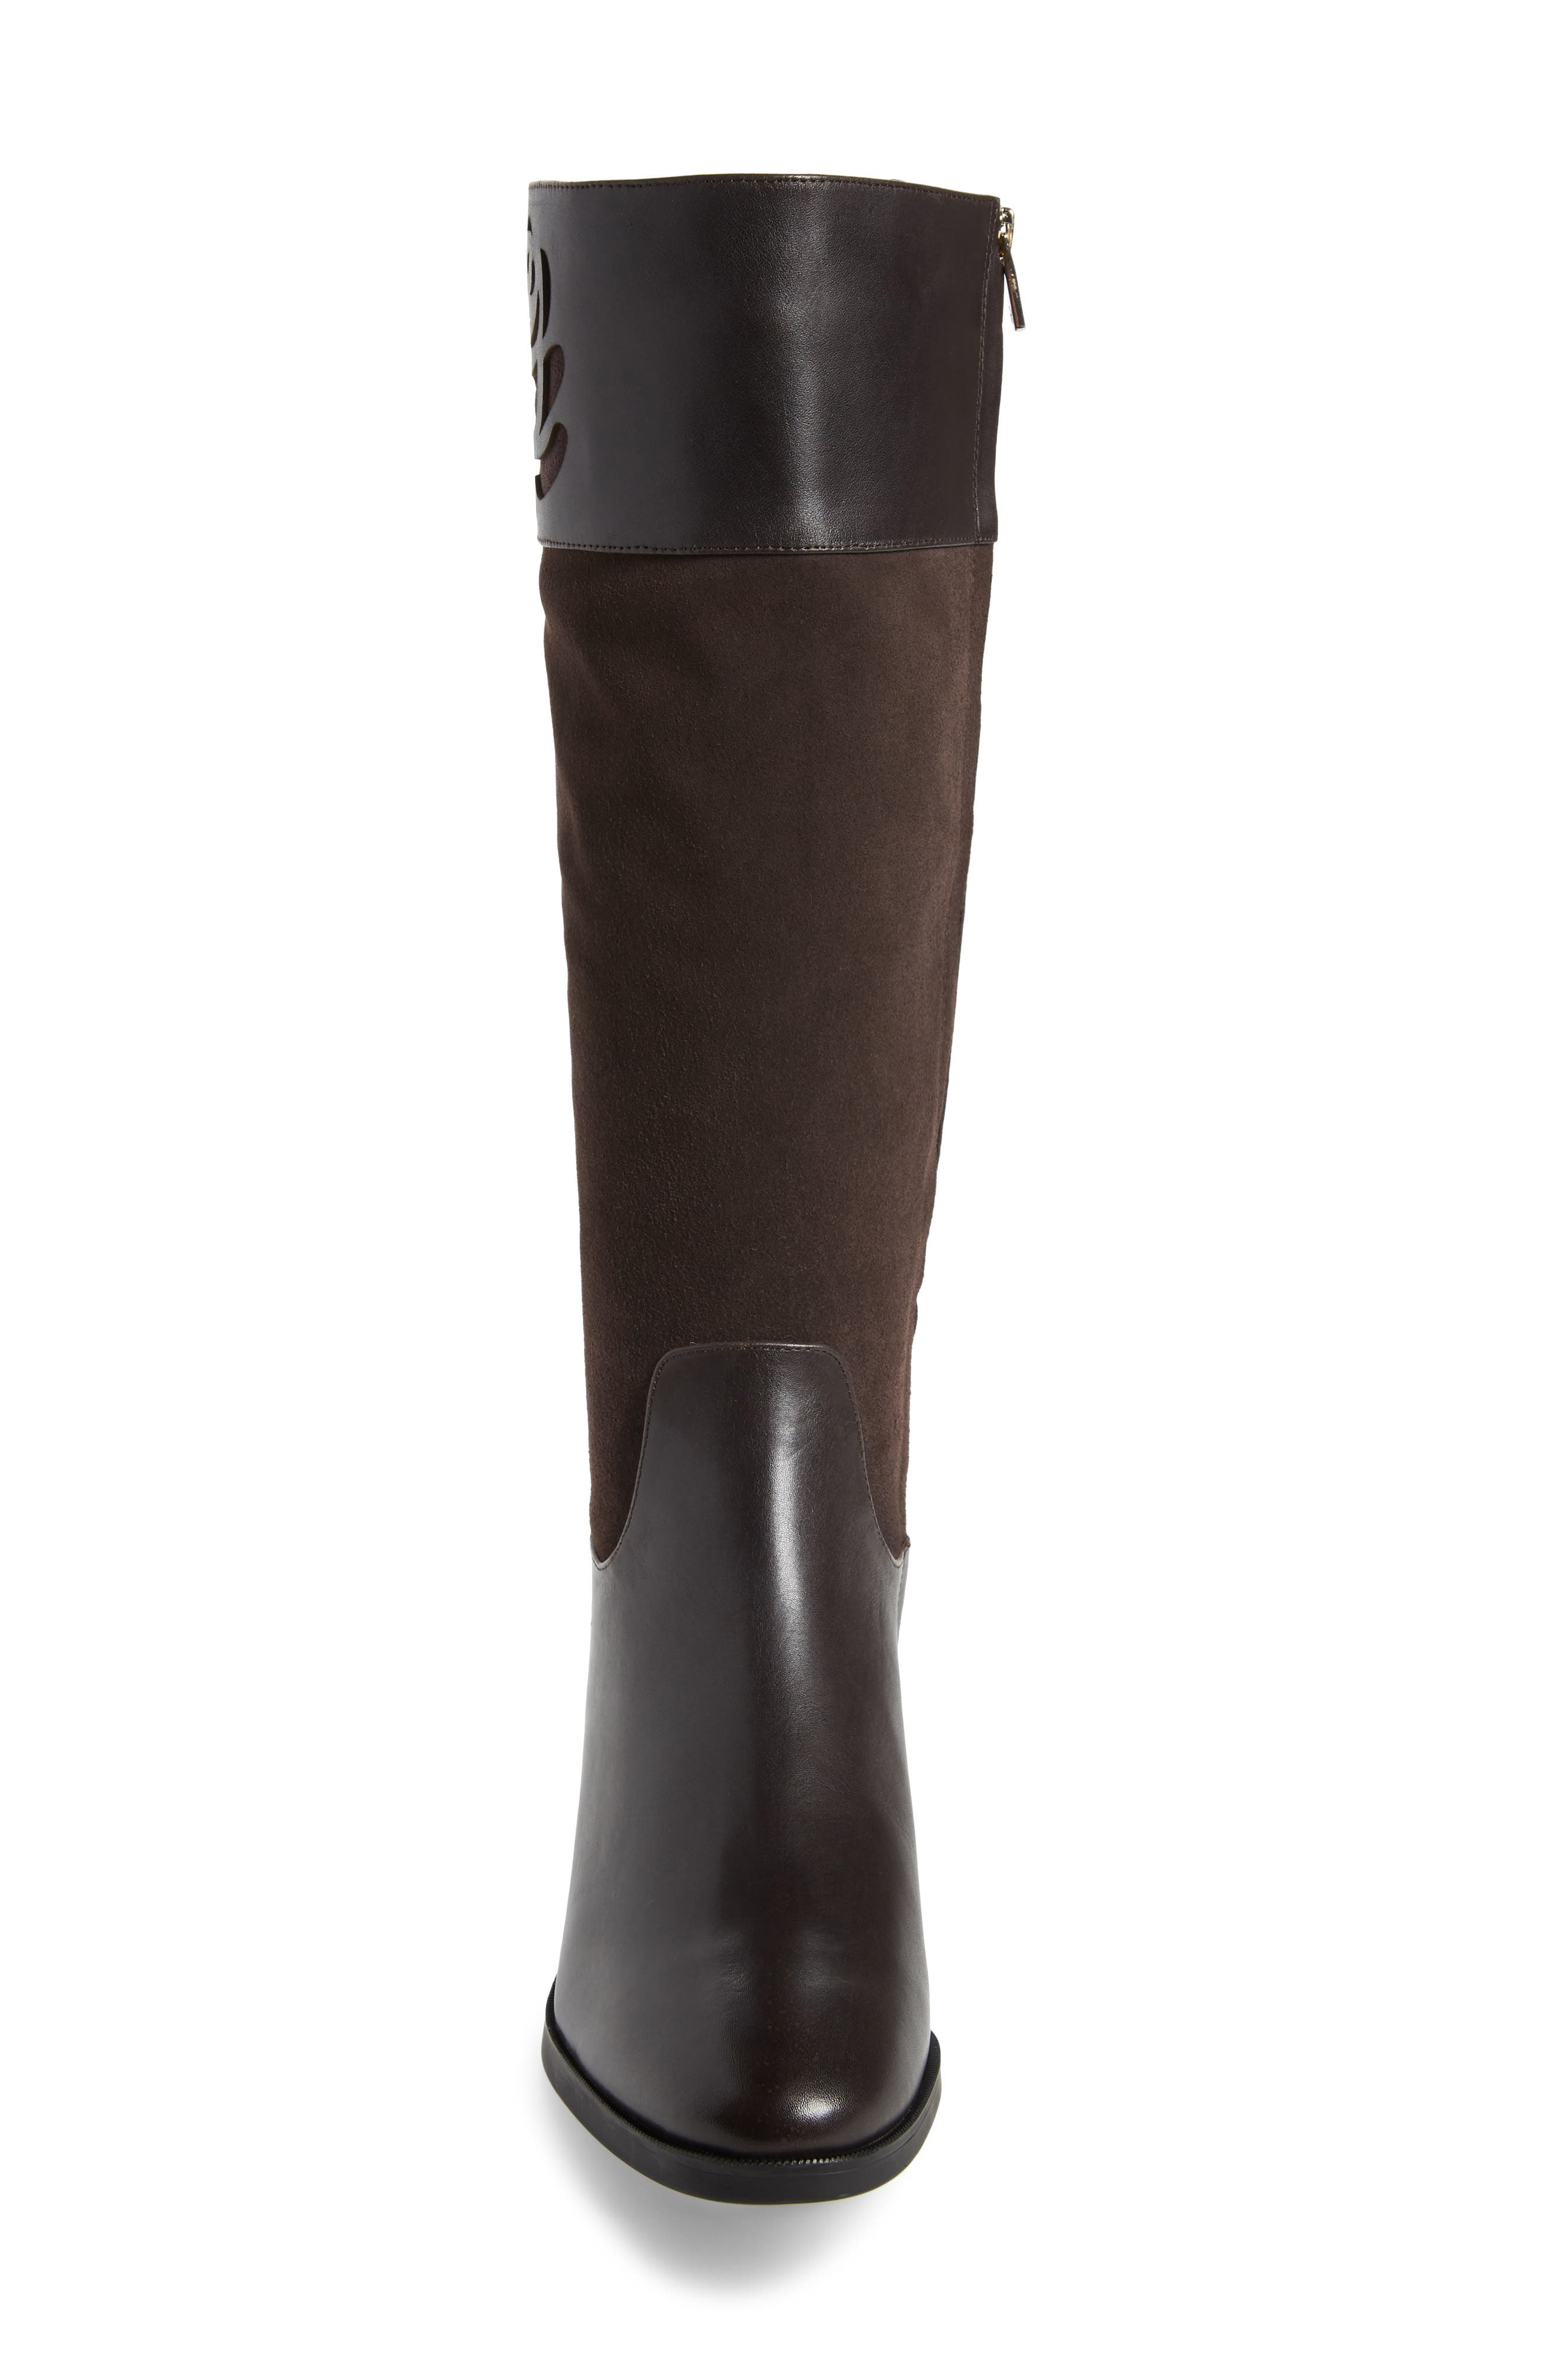 TARYN ROSE,                             Georgia Water Resistant Collection Boot,                             Alternate thumbnail 4, color,                             CHOCOLATE LEATHER/ SUEDE